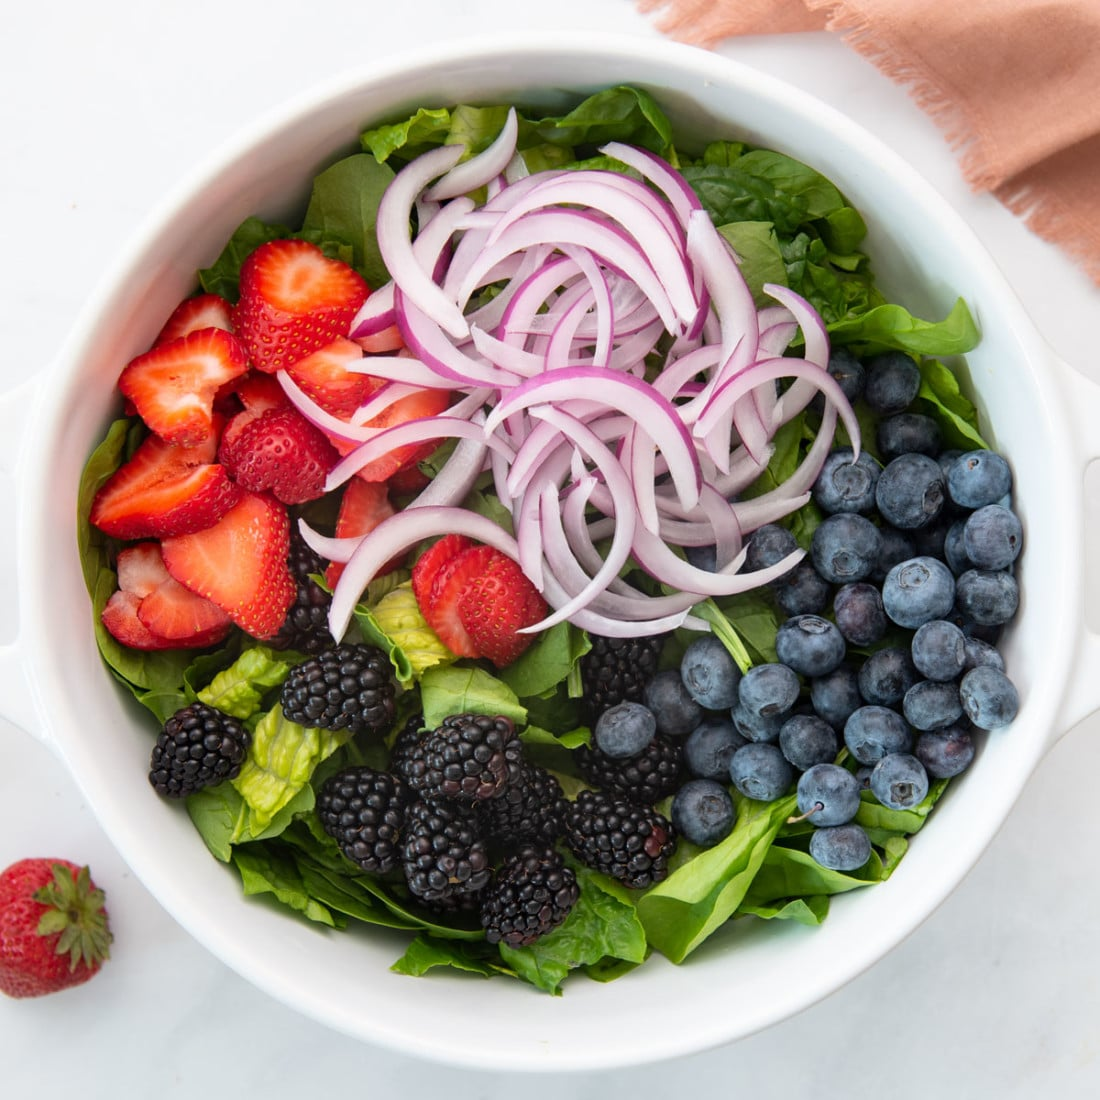 spinach, strawberries, blackberries, blueberries, red onion, and avocado in large salad bowl